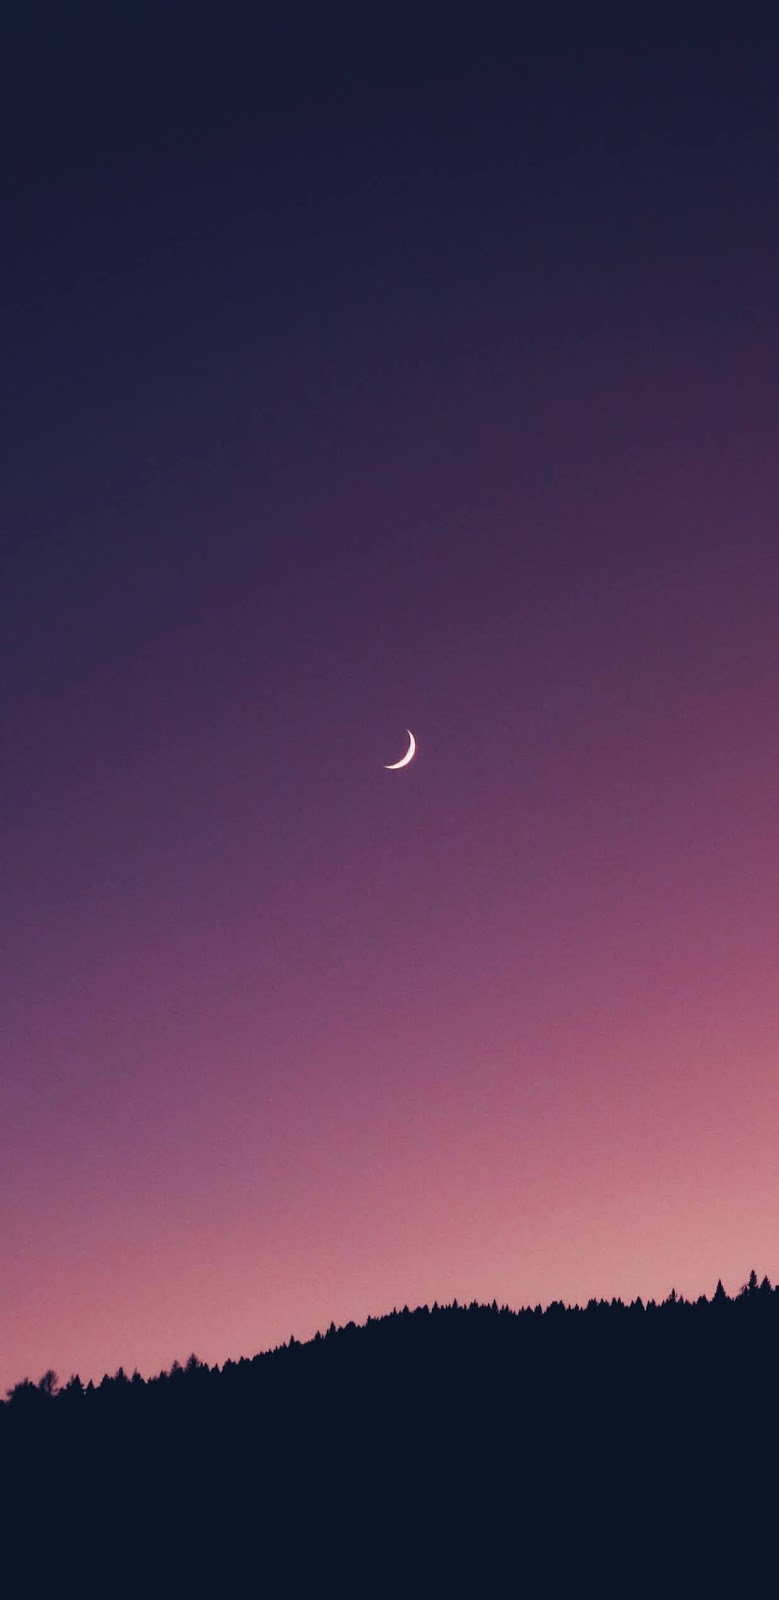 Crescent moon in the twilight sky